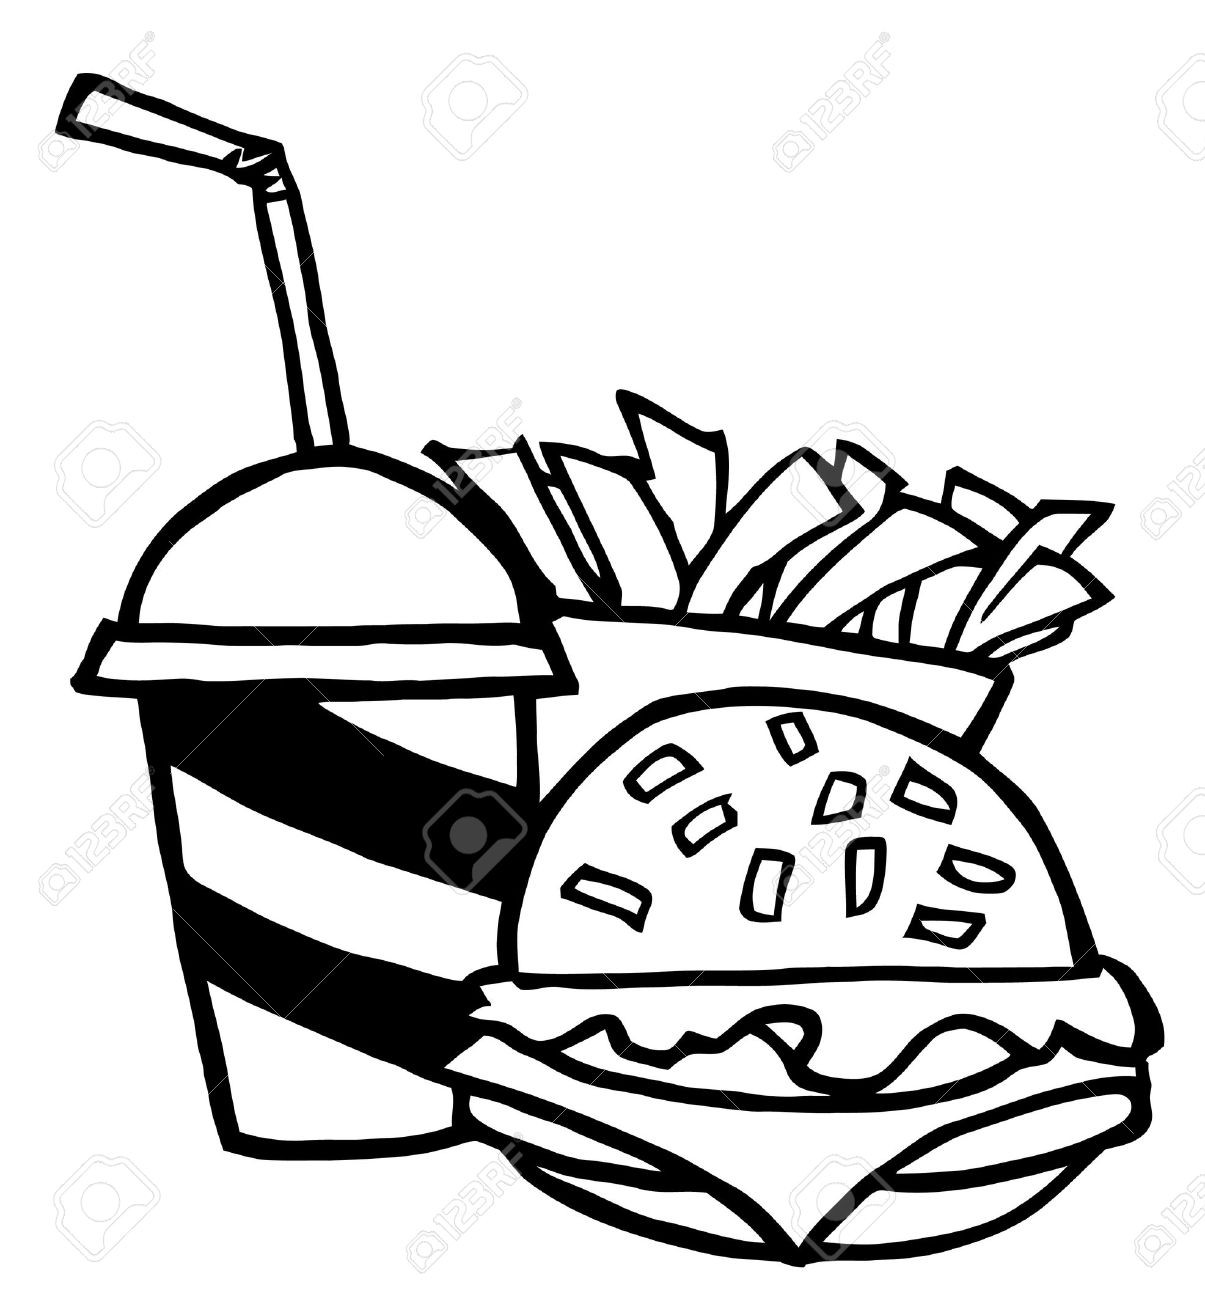 1205x1300 burger drawing burger fry for free download